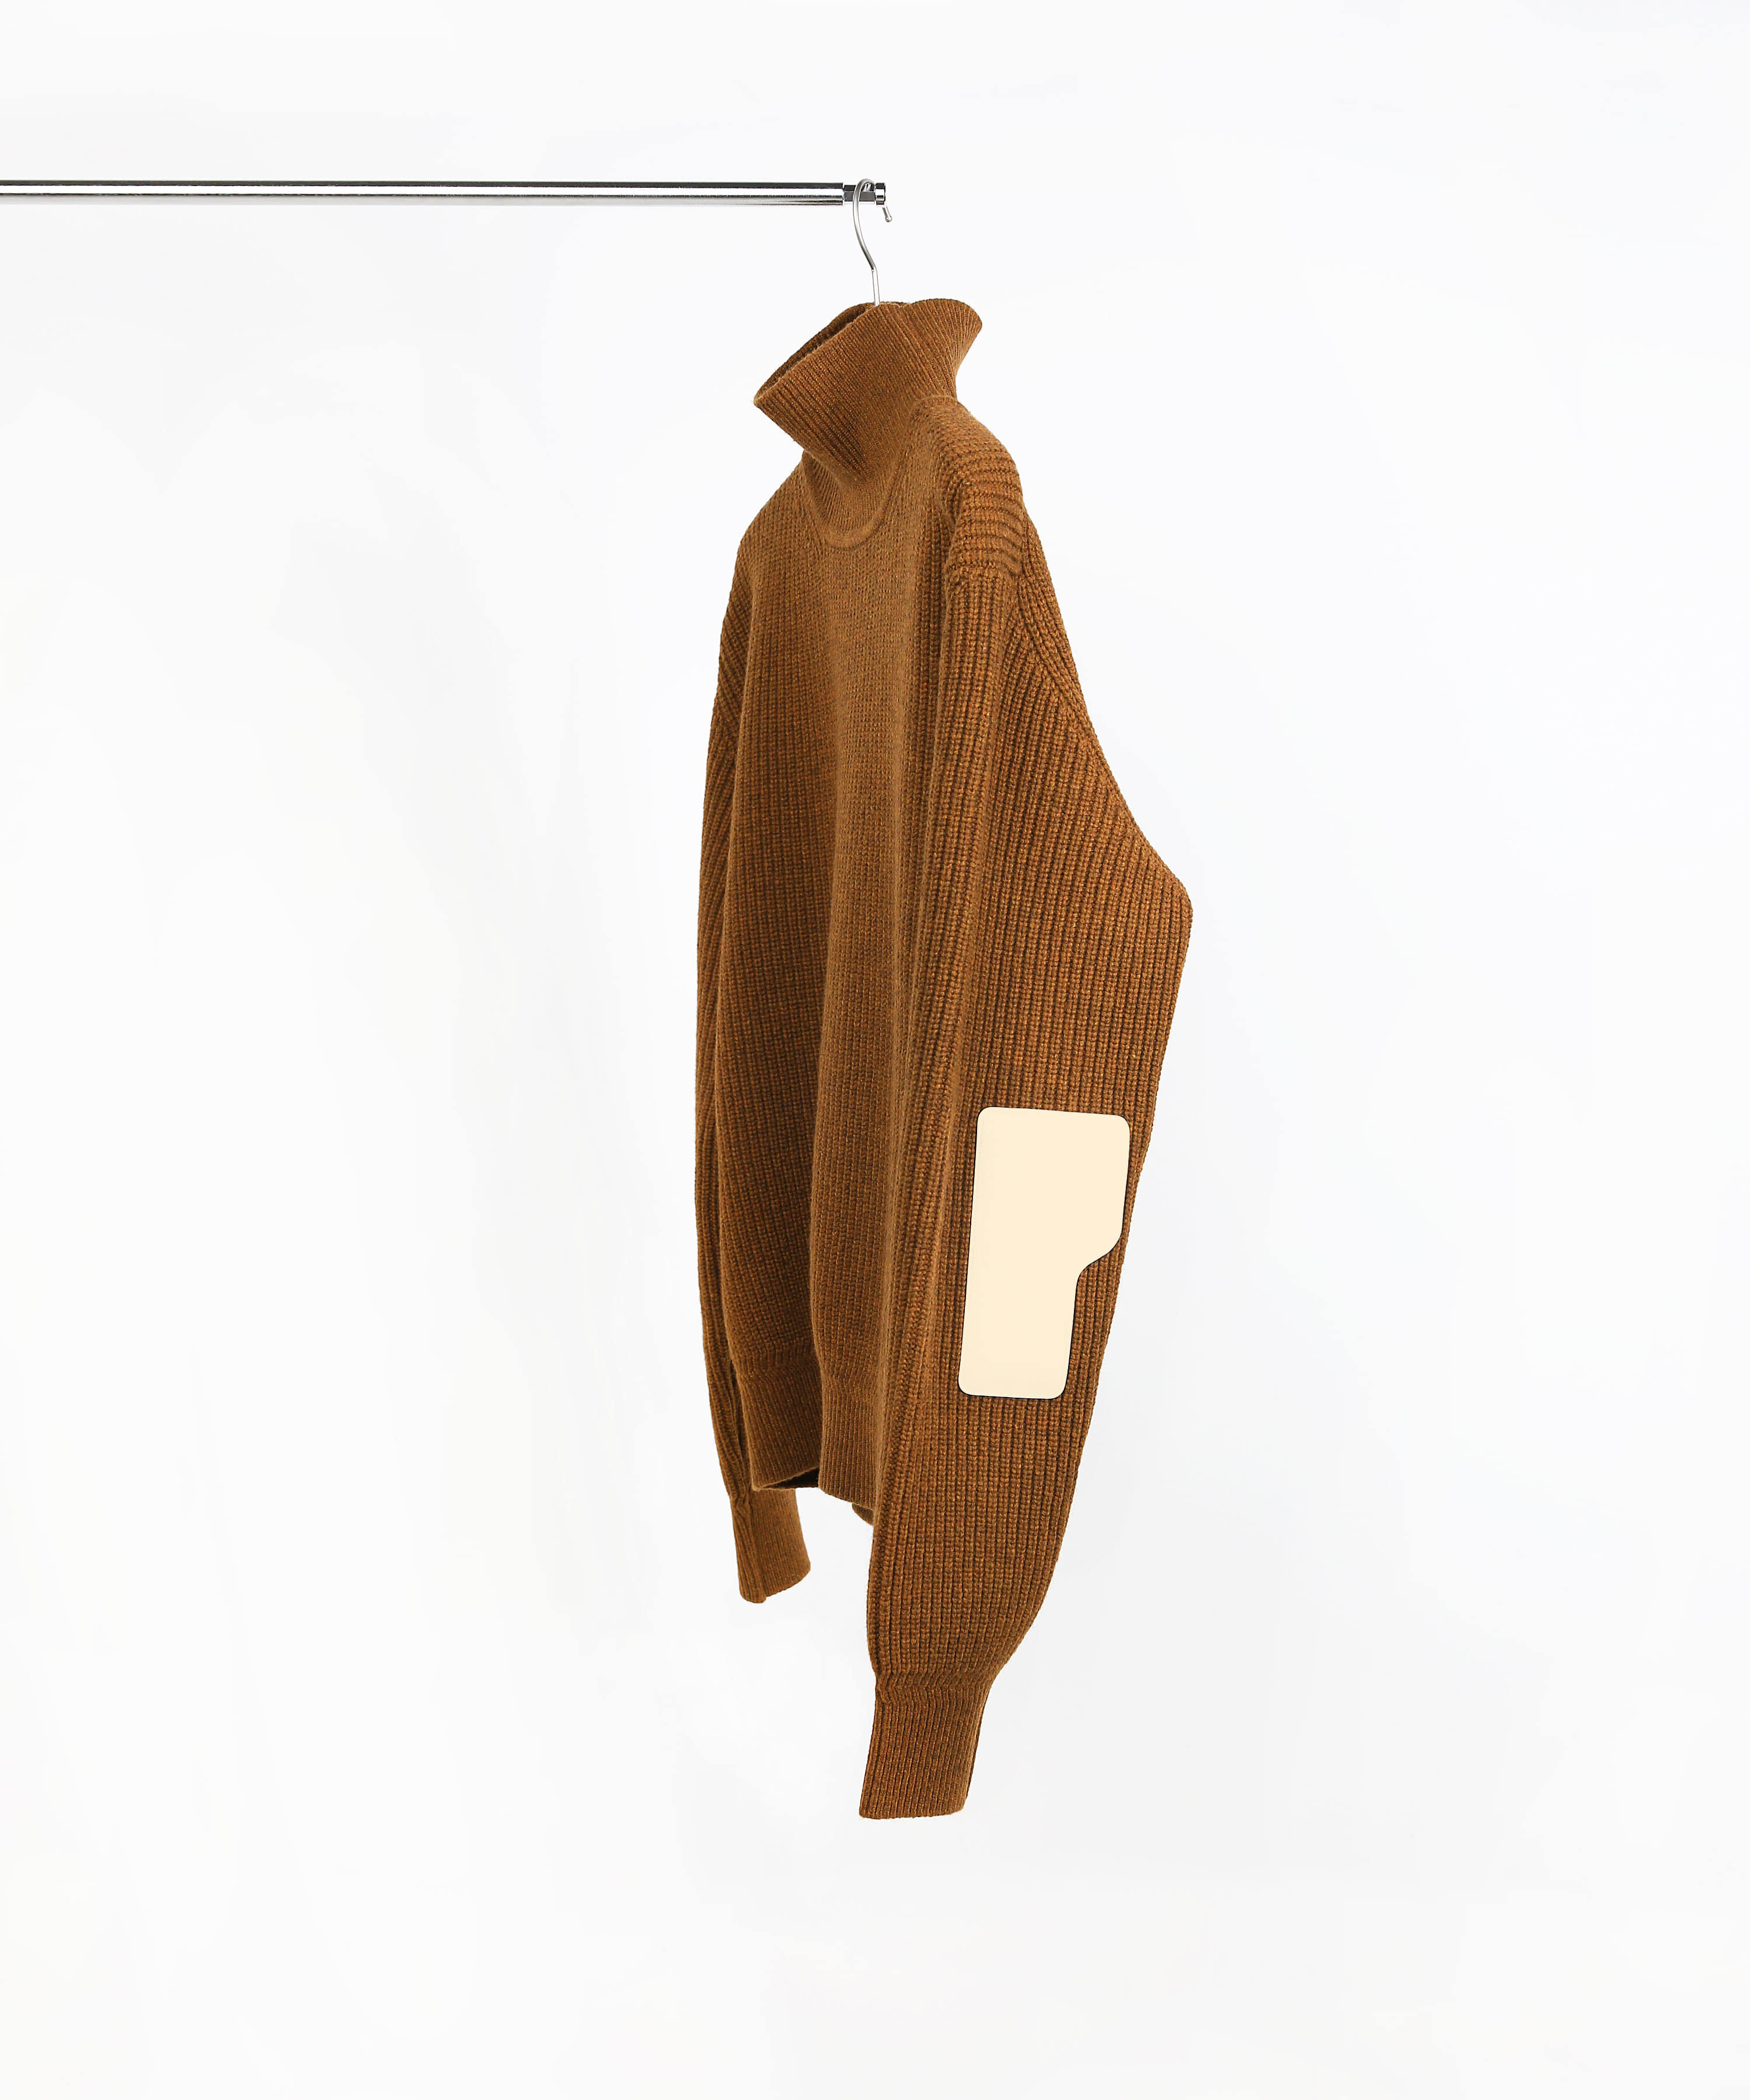 SIENNA MELANGE BROWN ROVER WOOL KNIT TURTLENECK